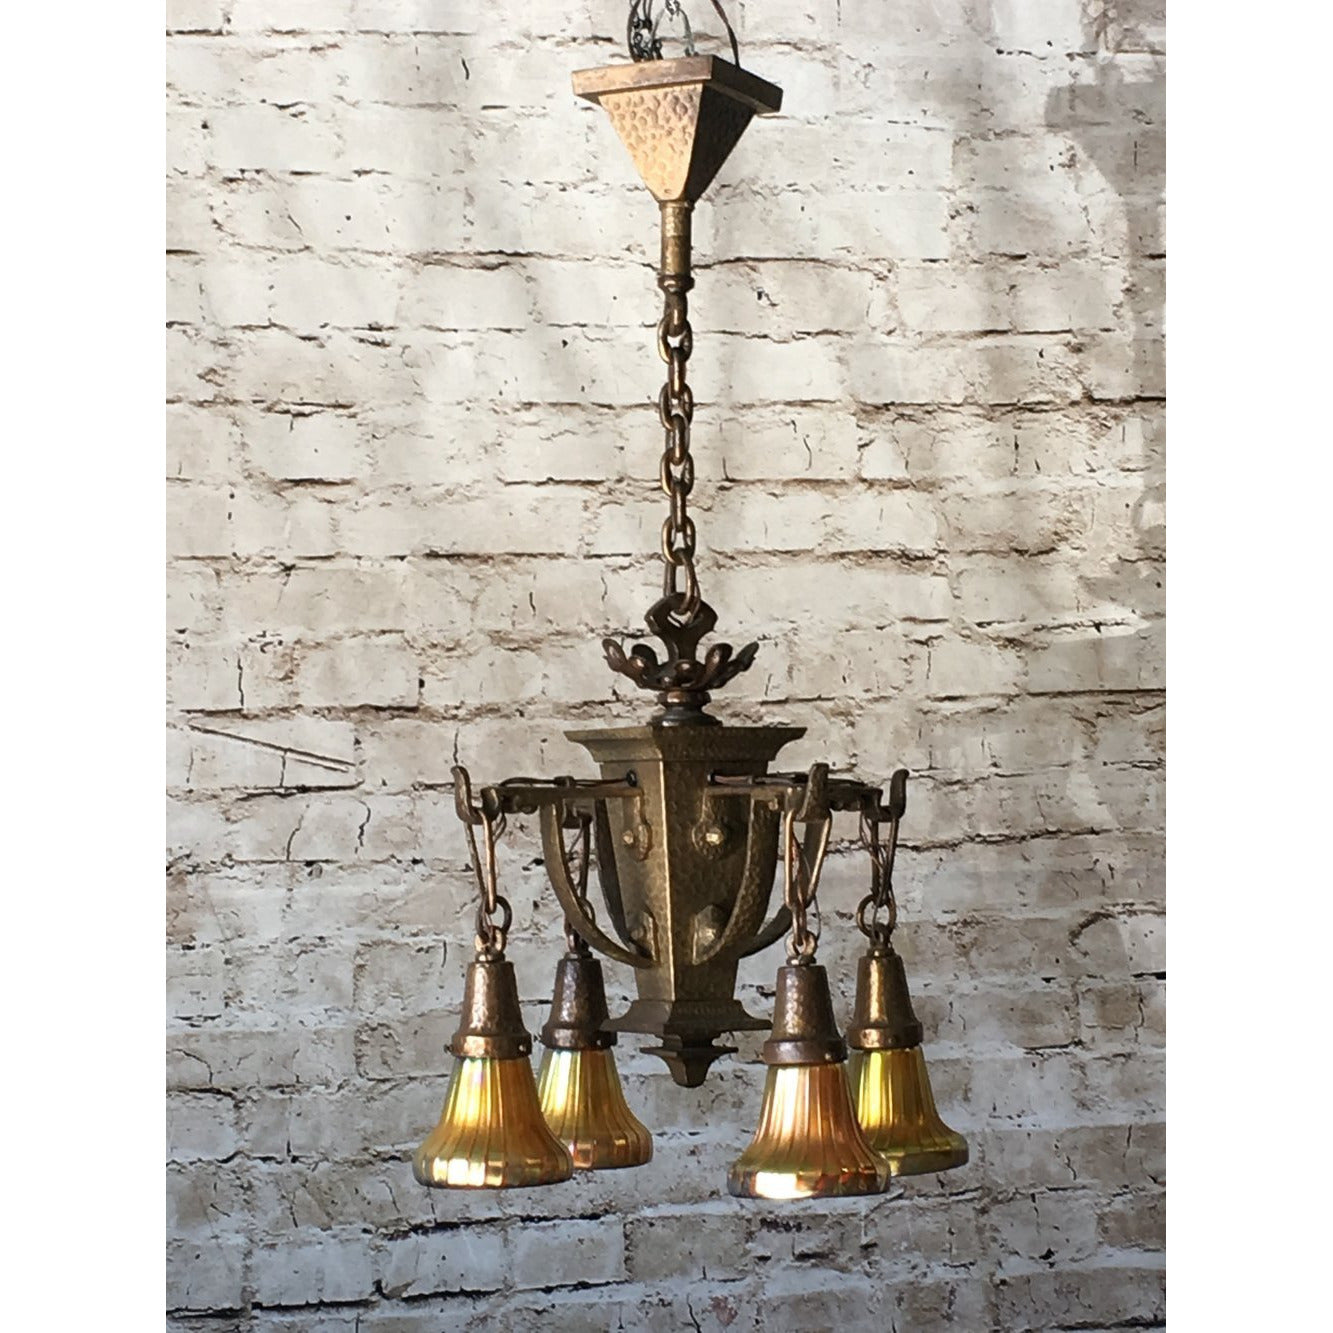 Hammered Arts and Crafts Chandelier with Original Finish #1838 - Filament Vintage Lighting